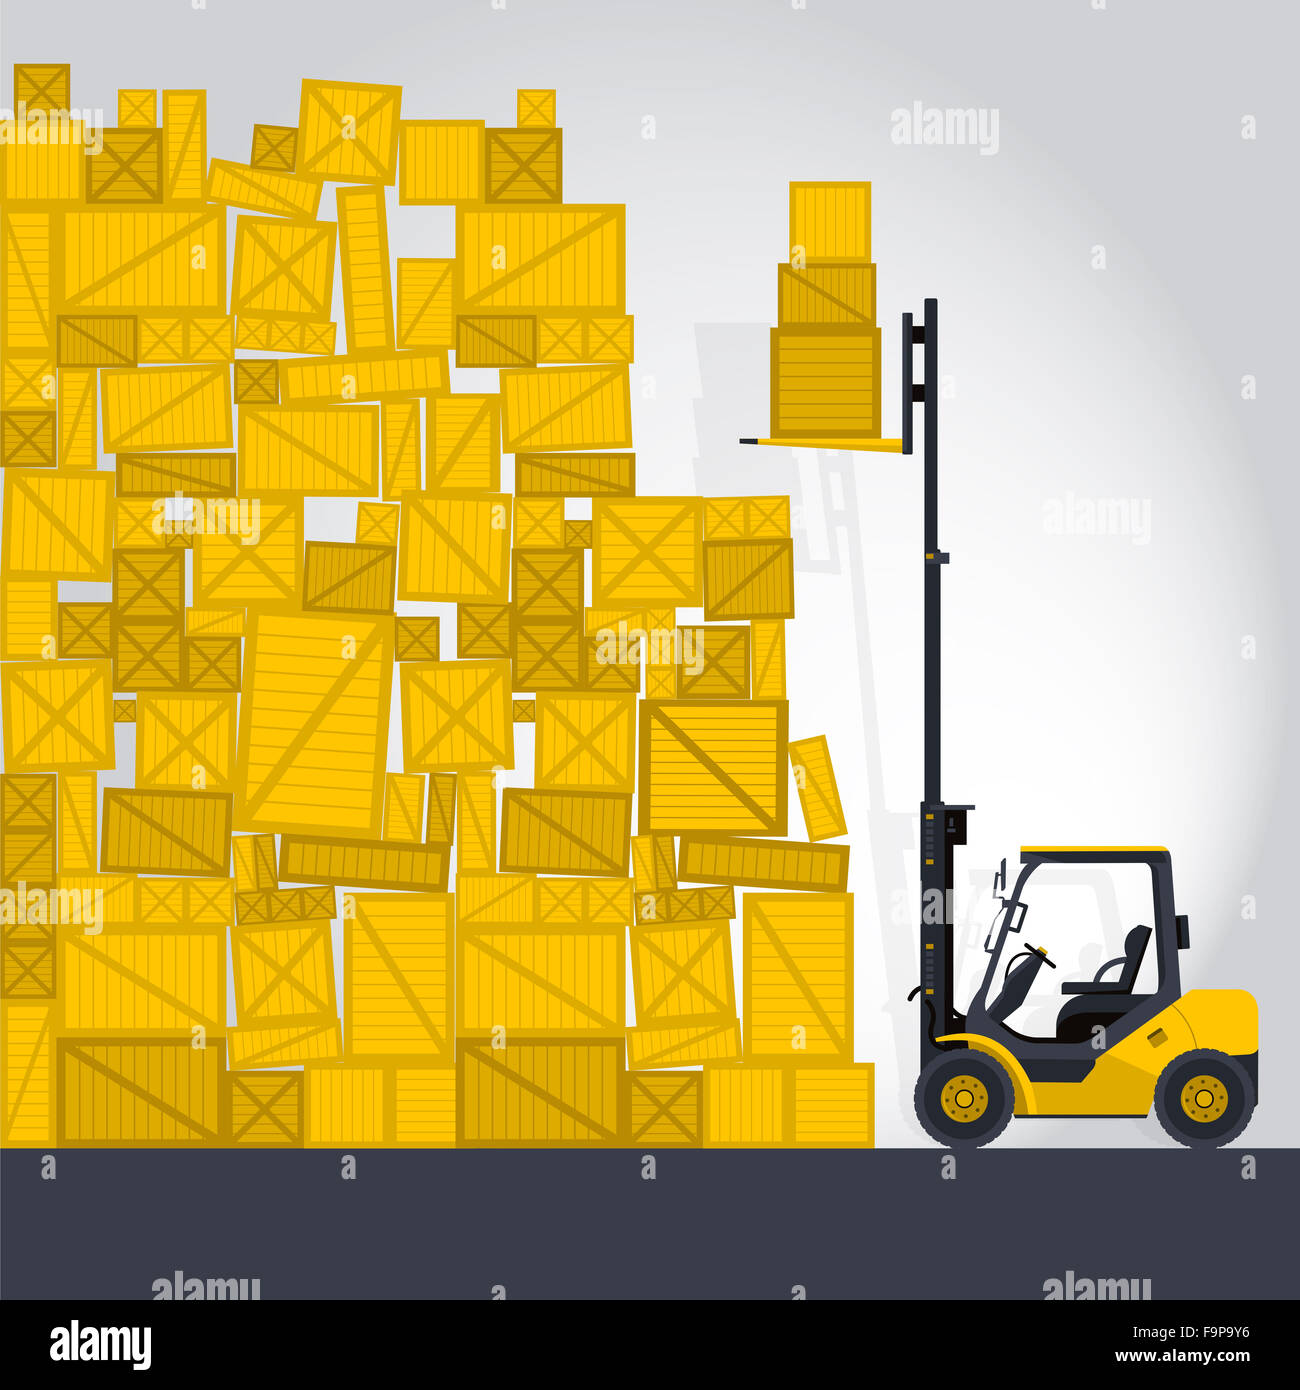 Yellow fork lift loader works in store nice lift loads crate box in warehouse storage flatten illustration master - Stock Image